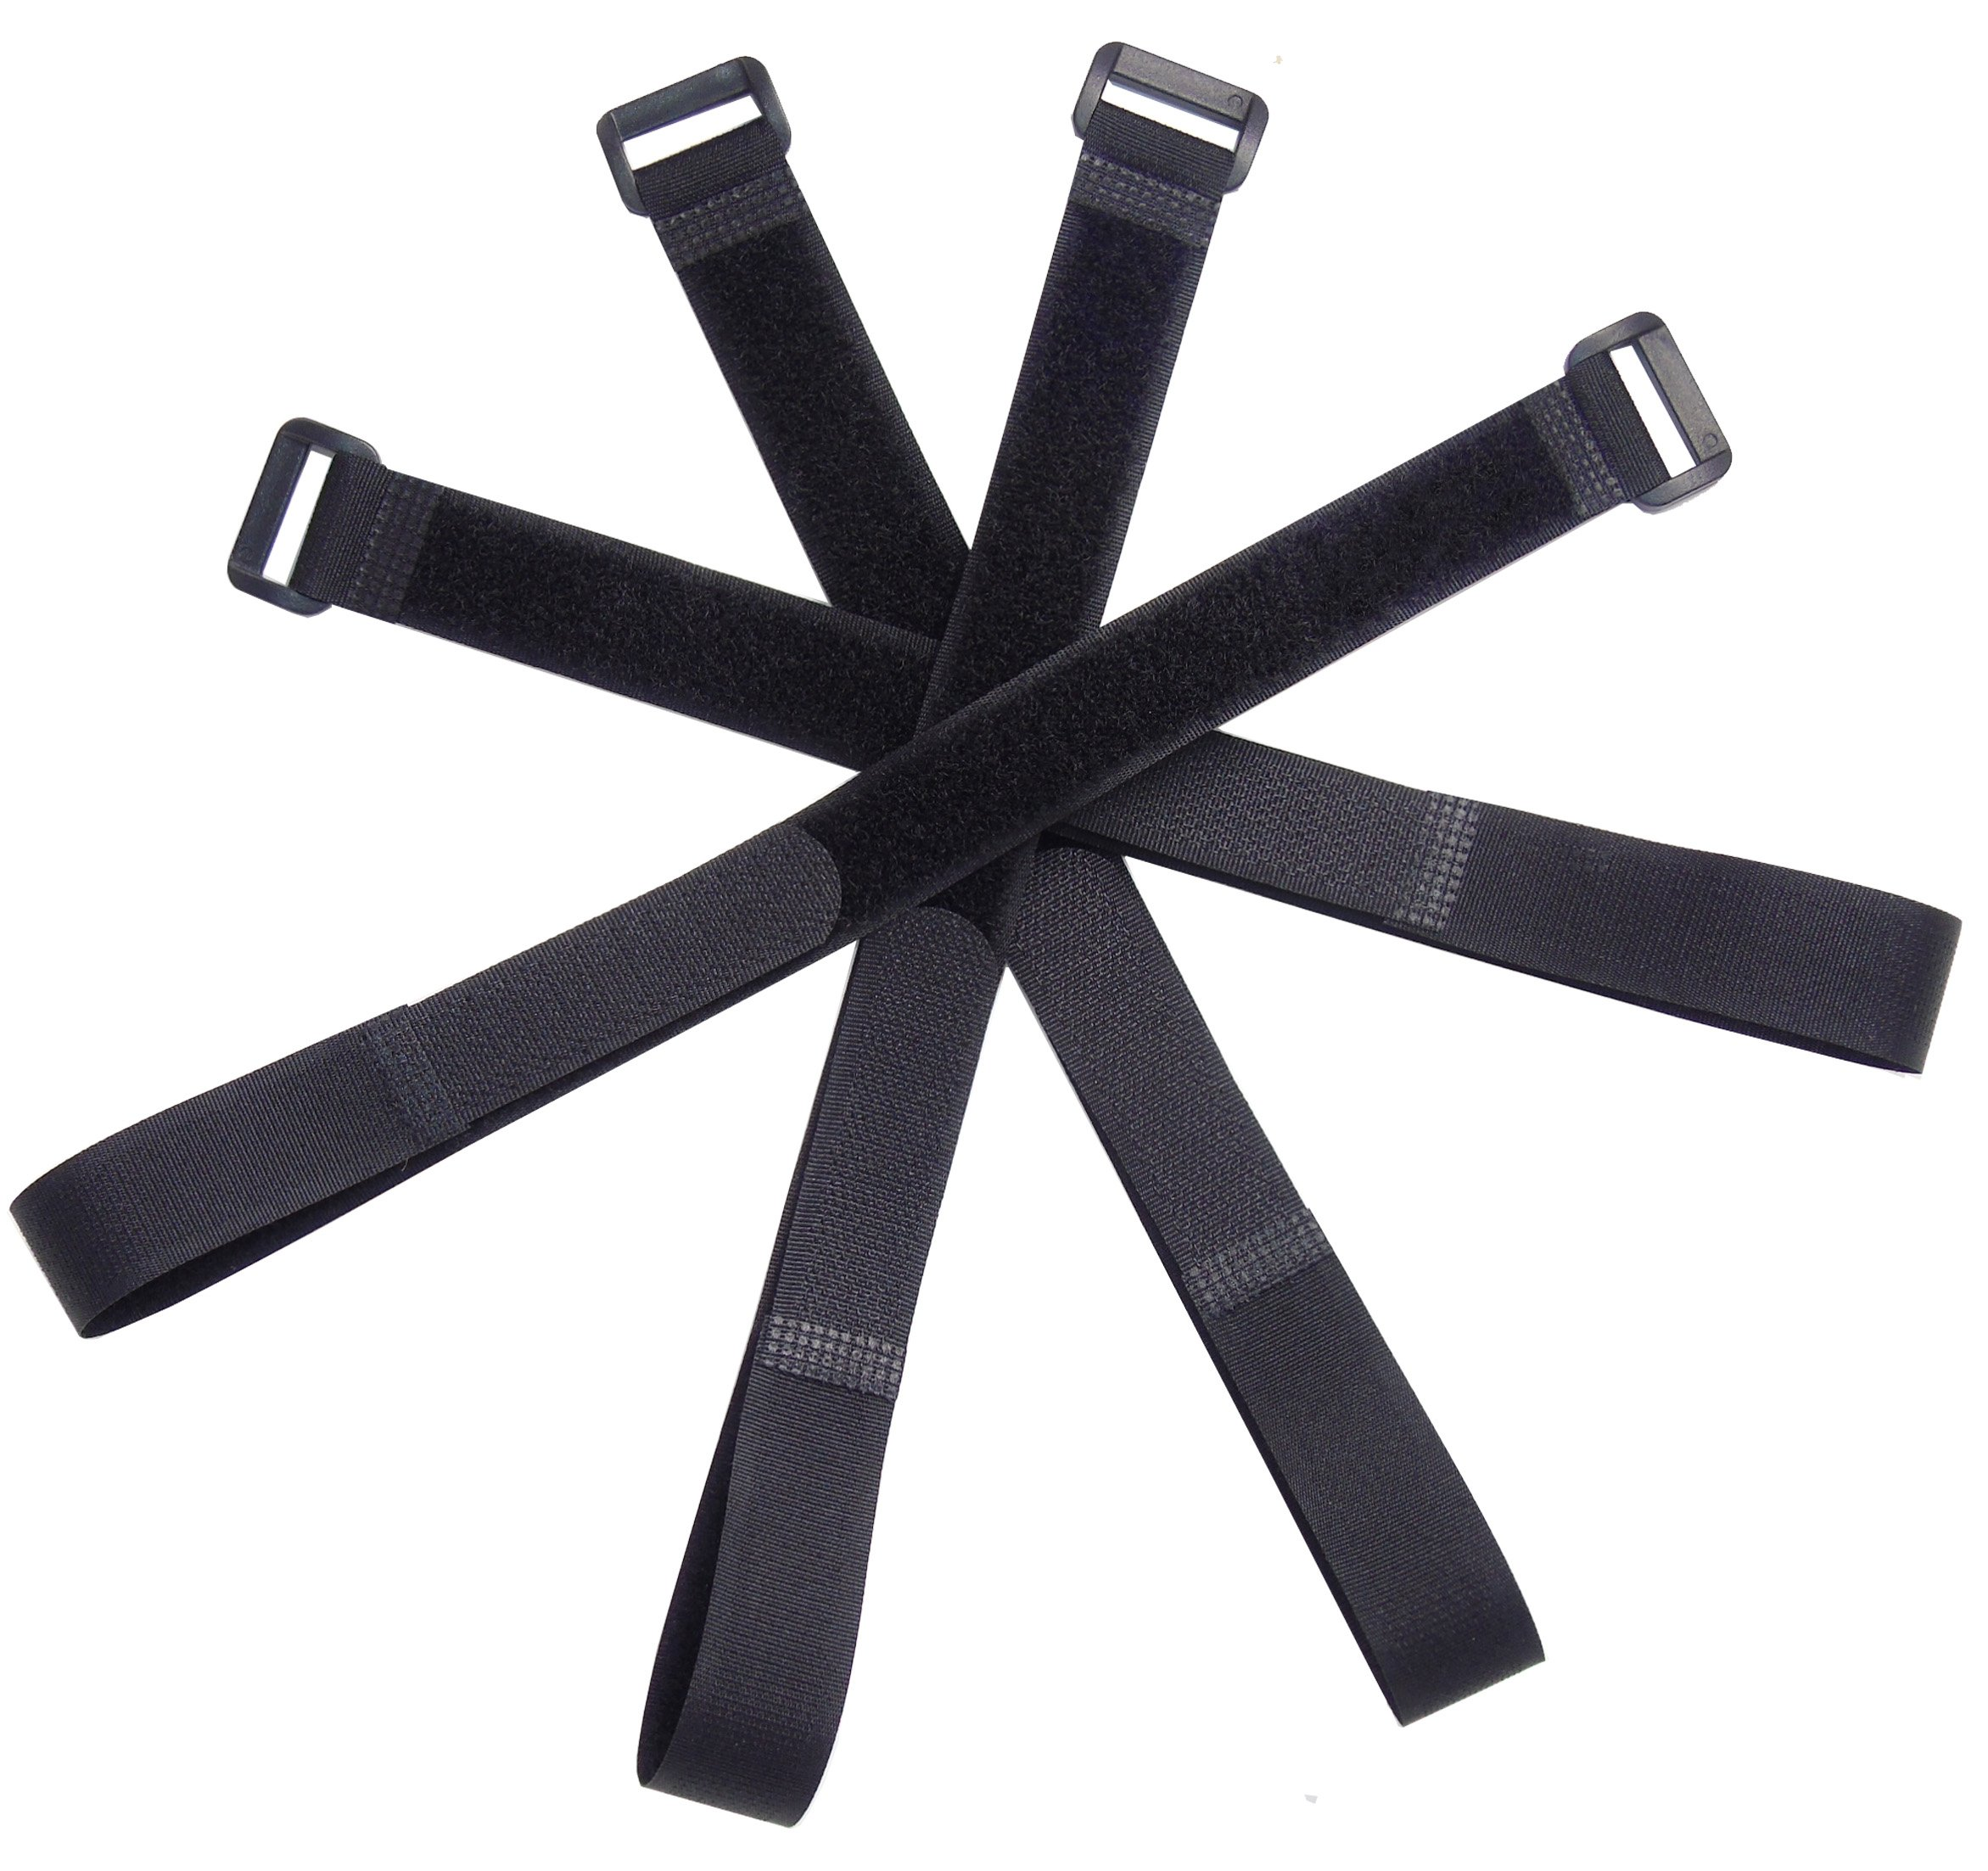 Ceeyali Reusable Hook and Loop Fastening Cable Ties Cable Straps for Home Office Tablet PC TV Electronics Wires Organizer Management (30 Pack 16 inch) by Ceeyali (Image #3)